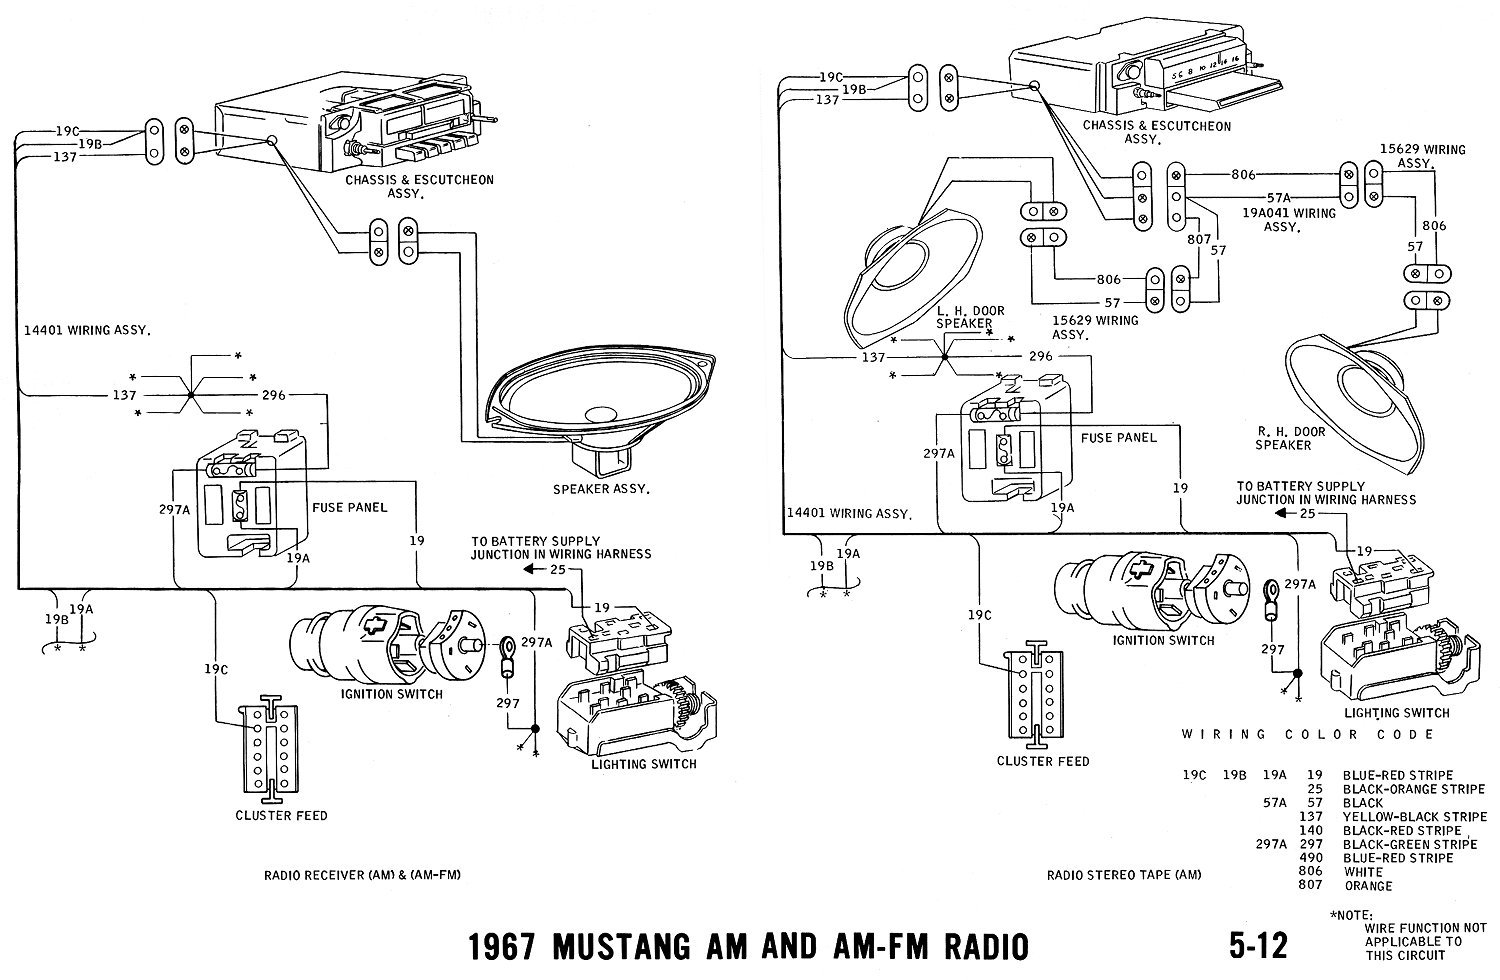 hight resolution of 1967 cougar wiring diagram wiring diagram todays1967 cougar wiring diagrams wiring library 73 mustang wiring diagram